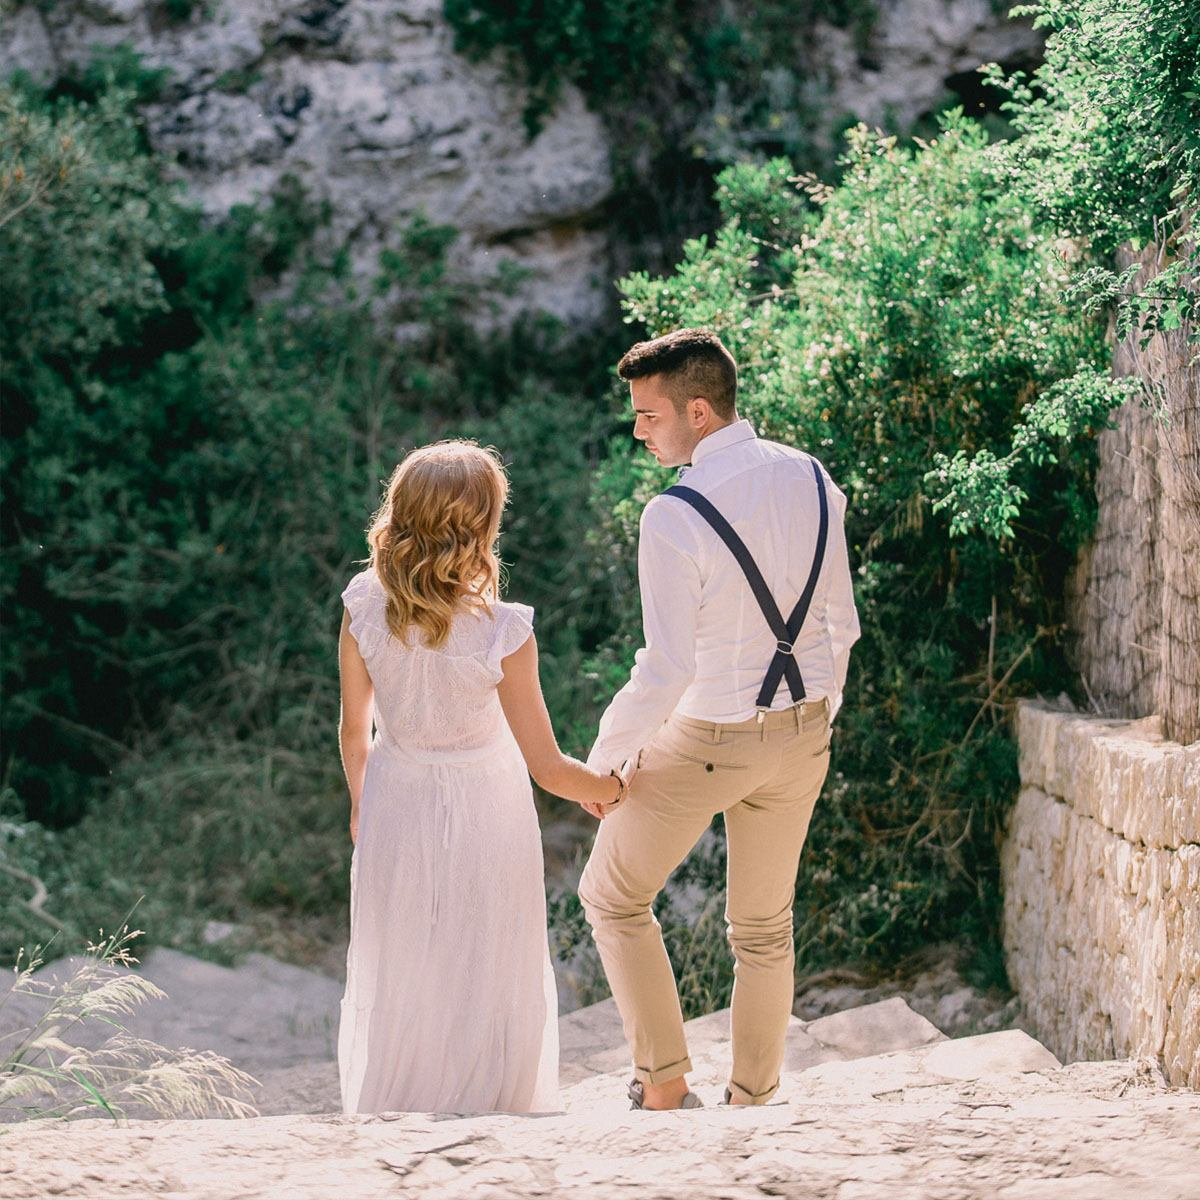 mallorca summer wedding photographer Wedding Photographer in Mallorca | Beach Boho Wedding Inspiration